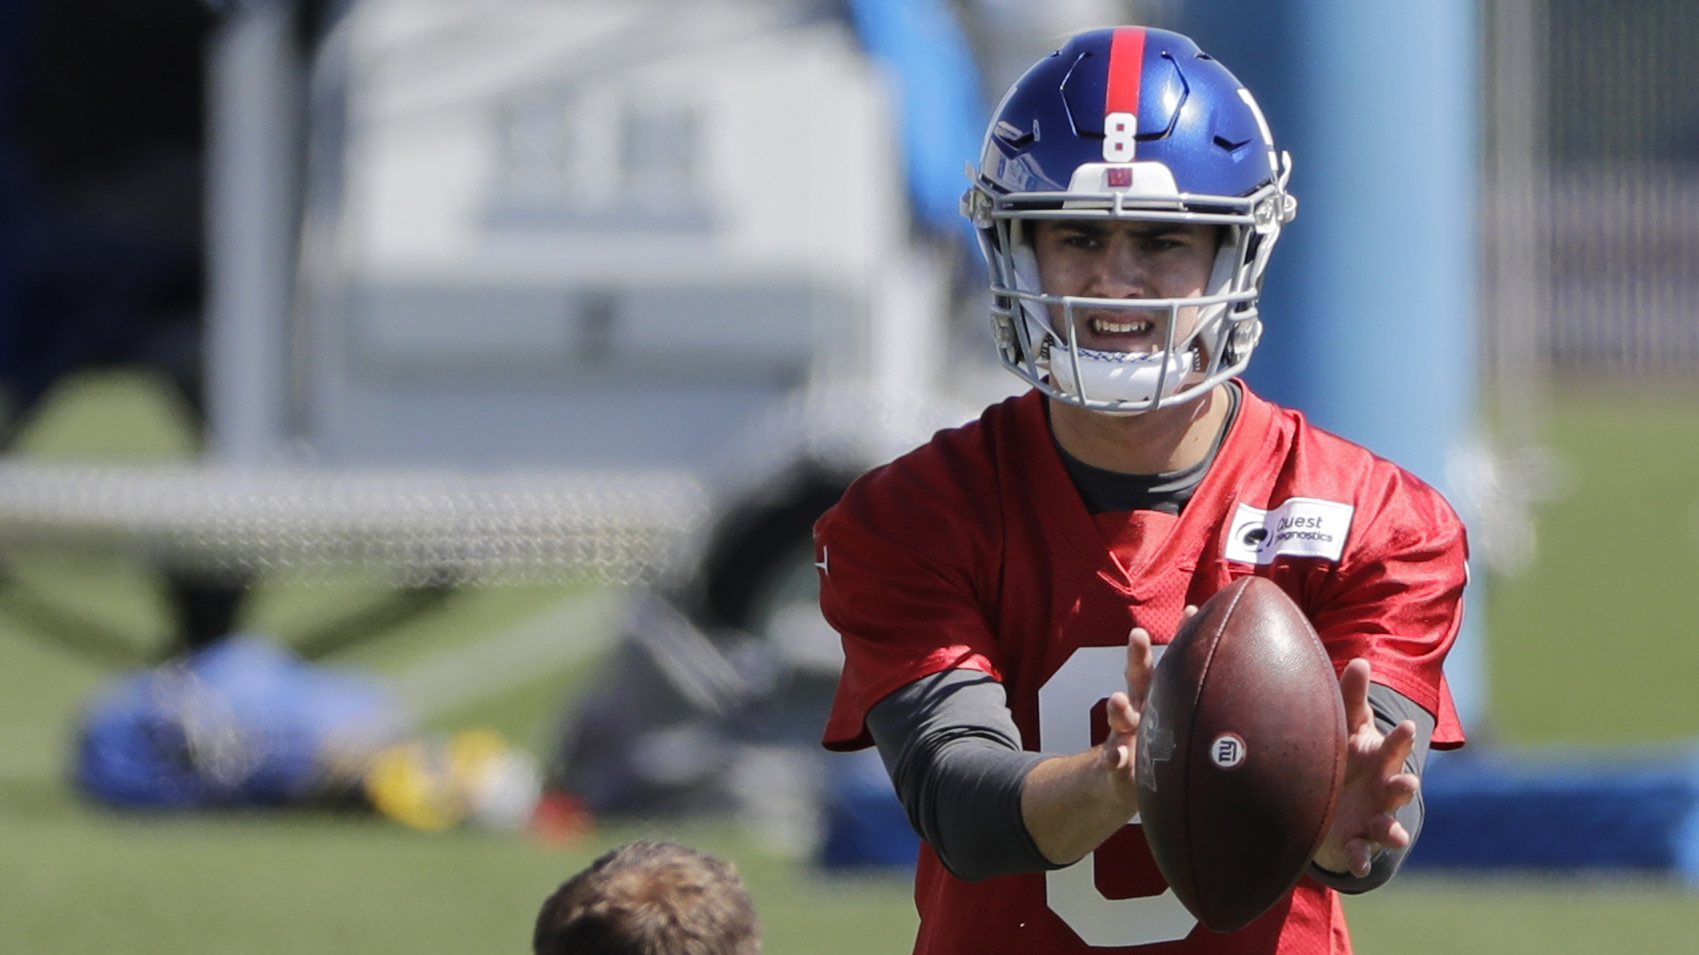 Giants' Pat Shurmur on Eli Manning, Daniel Jones QB competition